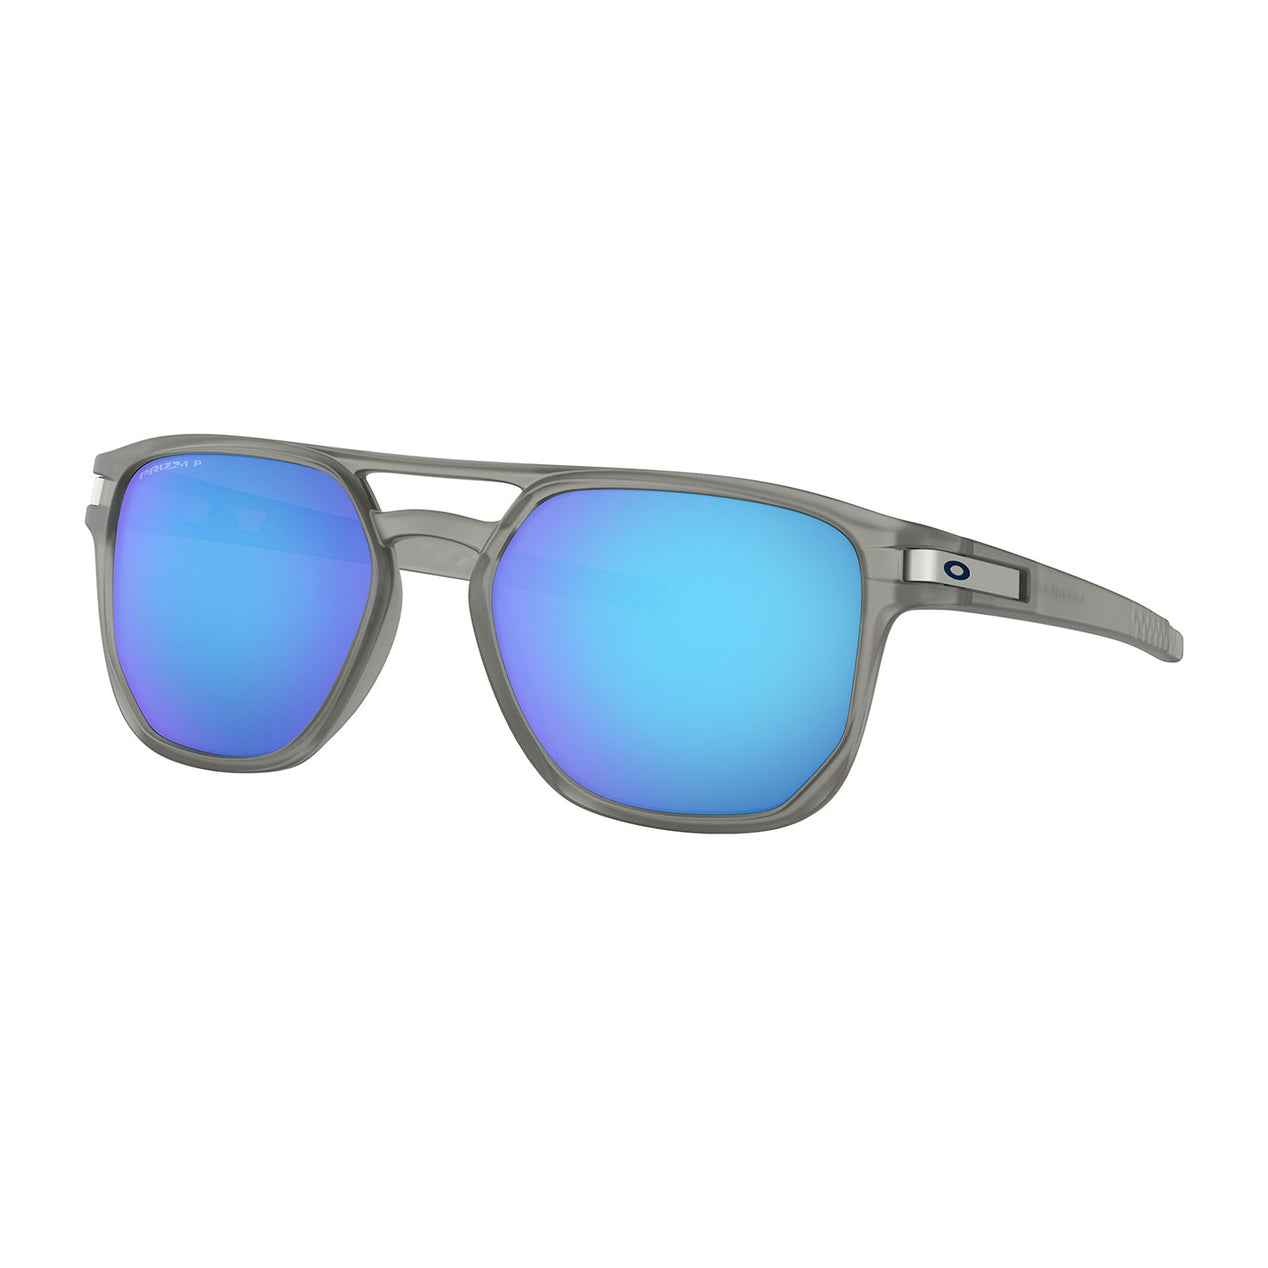 de197f0649 Latch Beta - Matte Grey Ink - Prizm Sapphire Iridium Polarized Lens  Sunglasses No Color ...